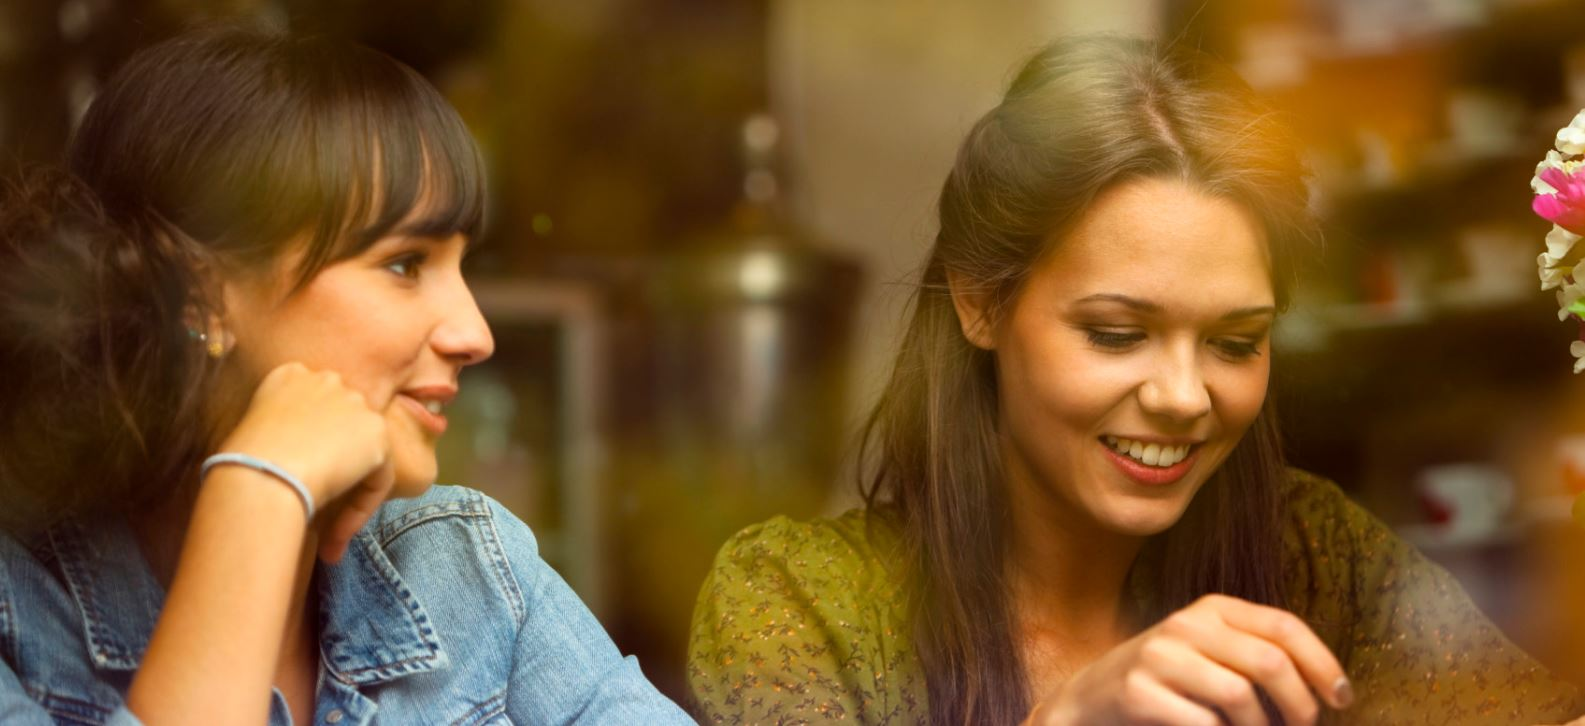 roommate agreement, 5 Steps To A Successful Roommate Agreement